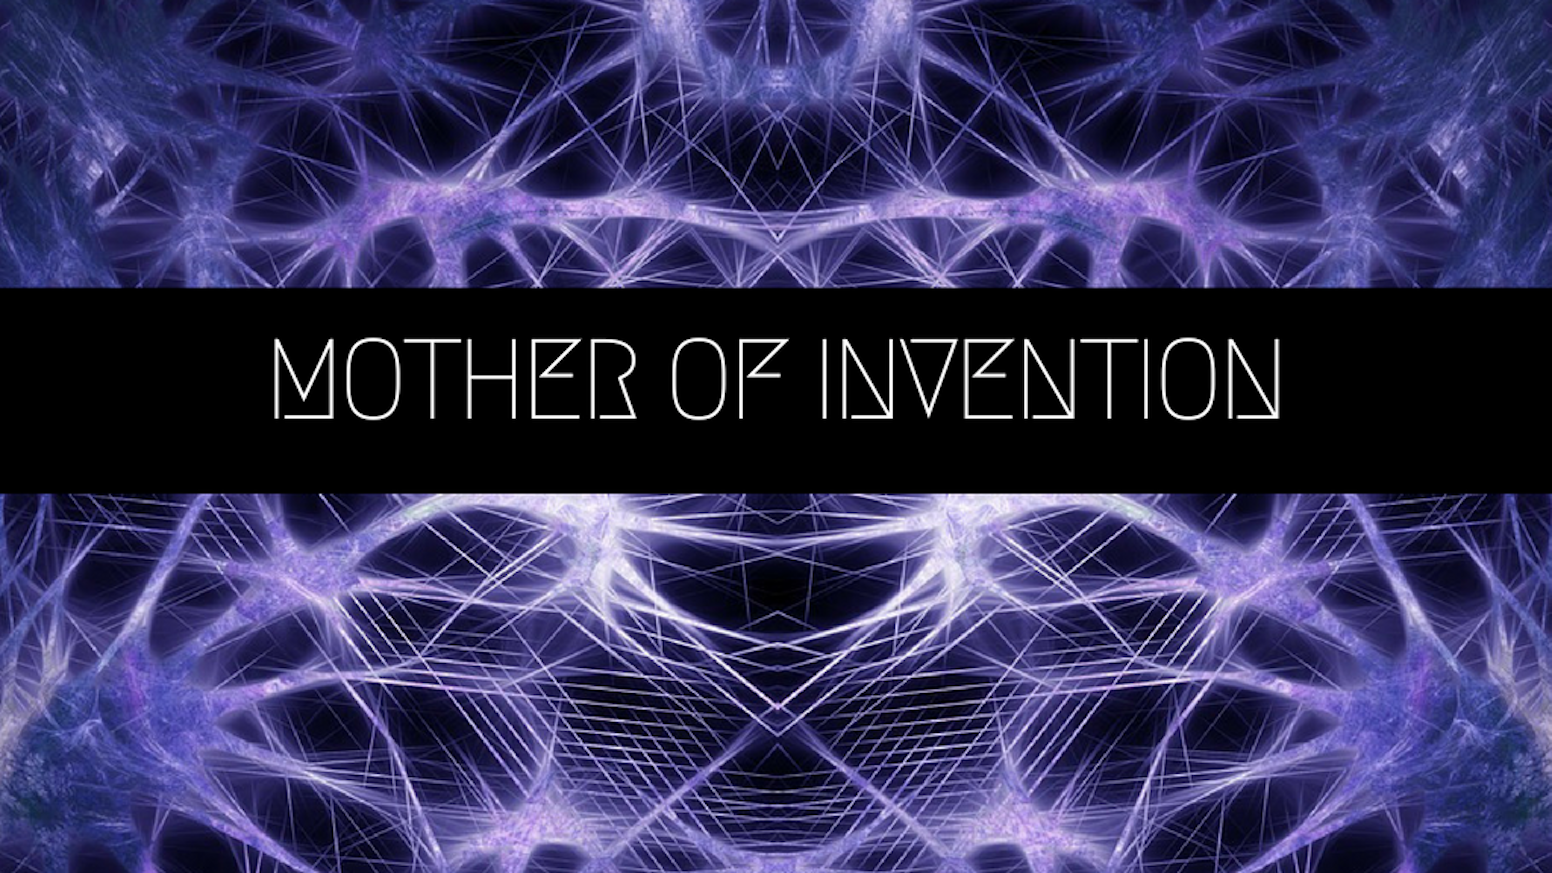 Mother Of Invention By Twelfth Planet Press  Kickstarter Mother Of Invention A Speculative Fiction Anthology Of Diverse  Challenging Stories About Gender And Artificial Intelligence Coming Easy Essay Topics For High School Students also High School Essays  Essay Paper Writing Service